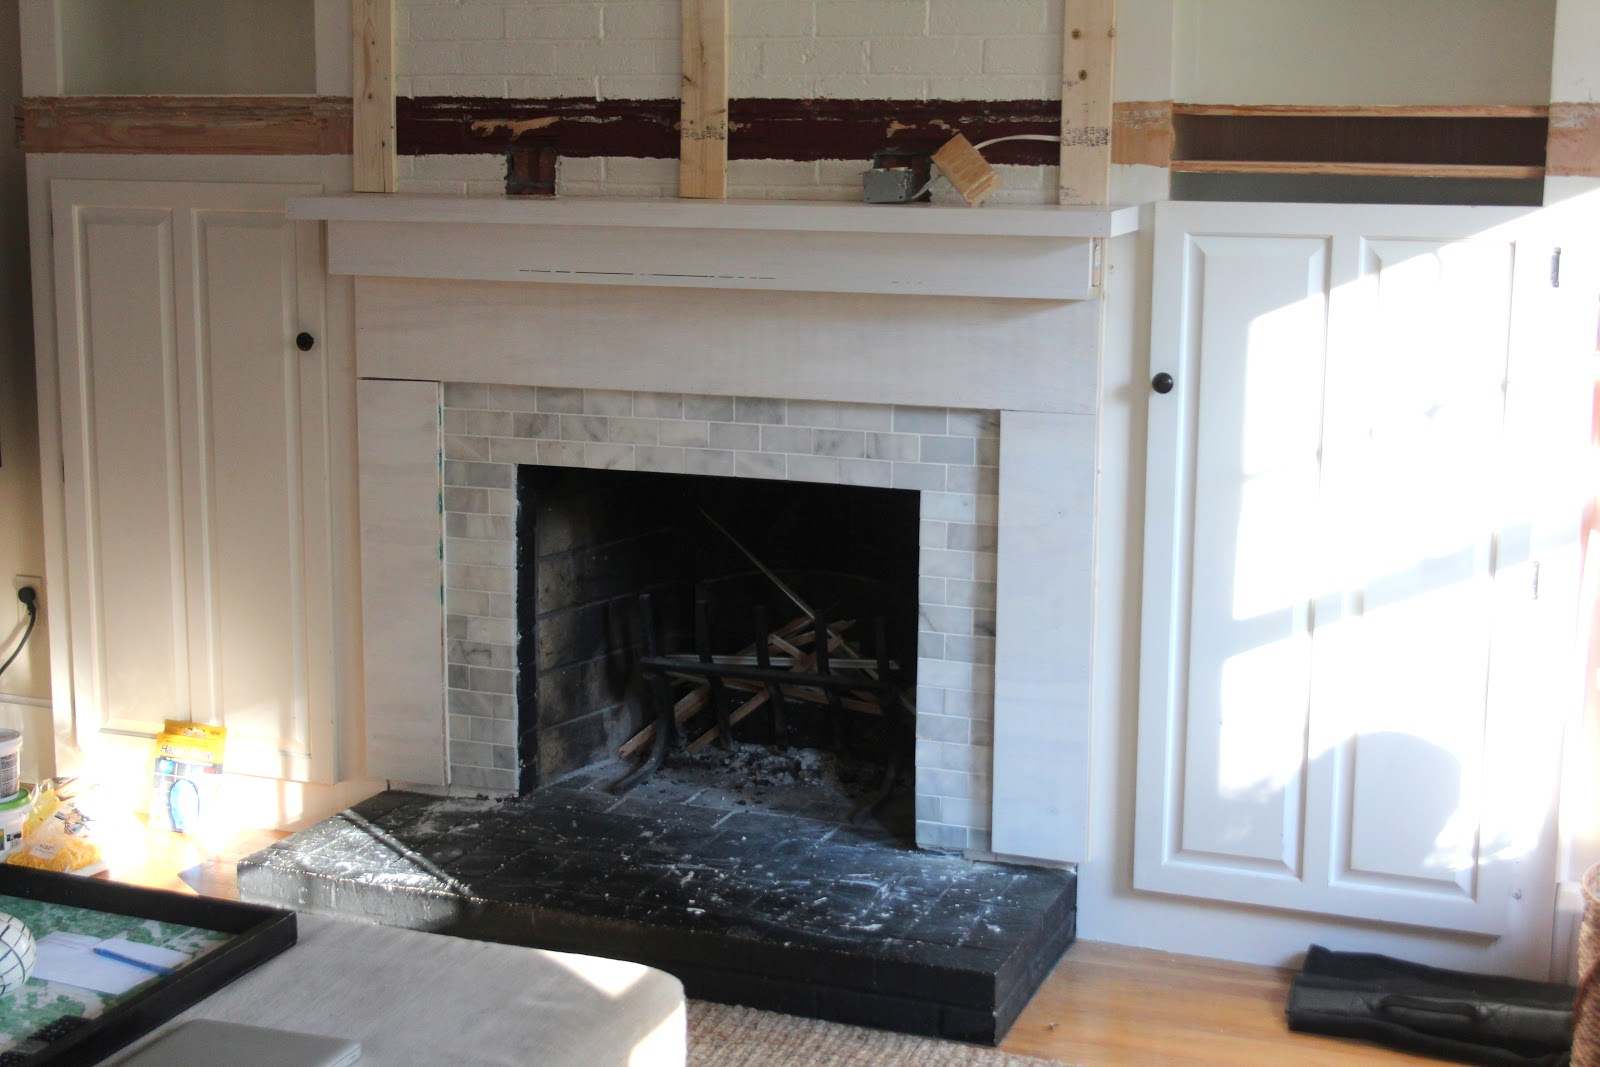 fa la la fireplace remodel in progress shine your light